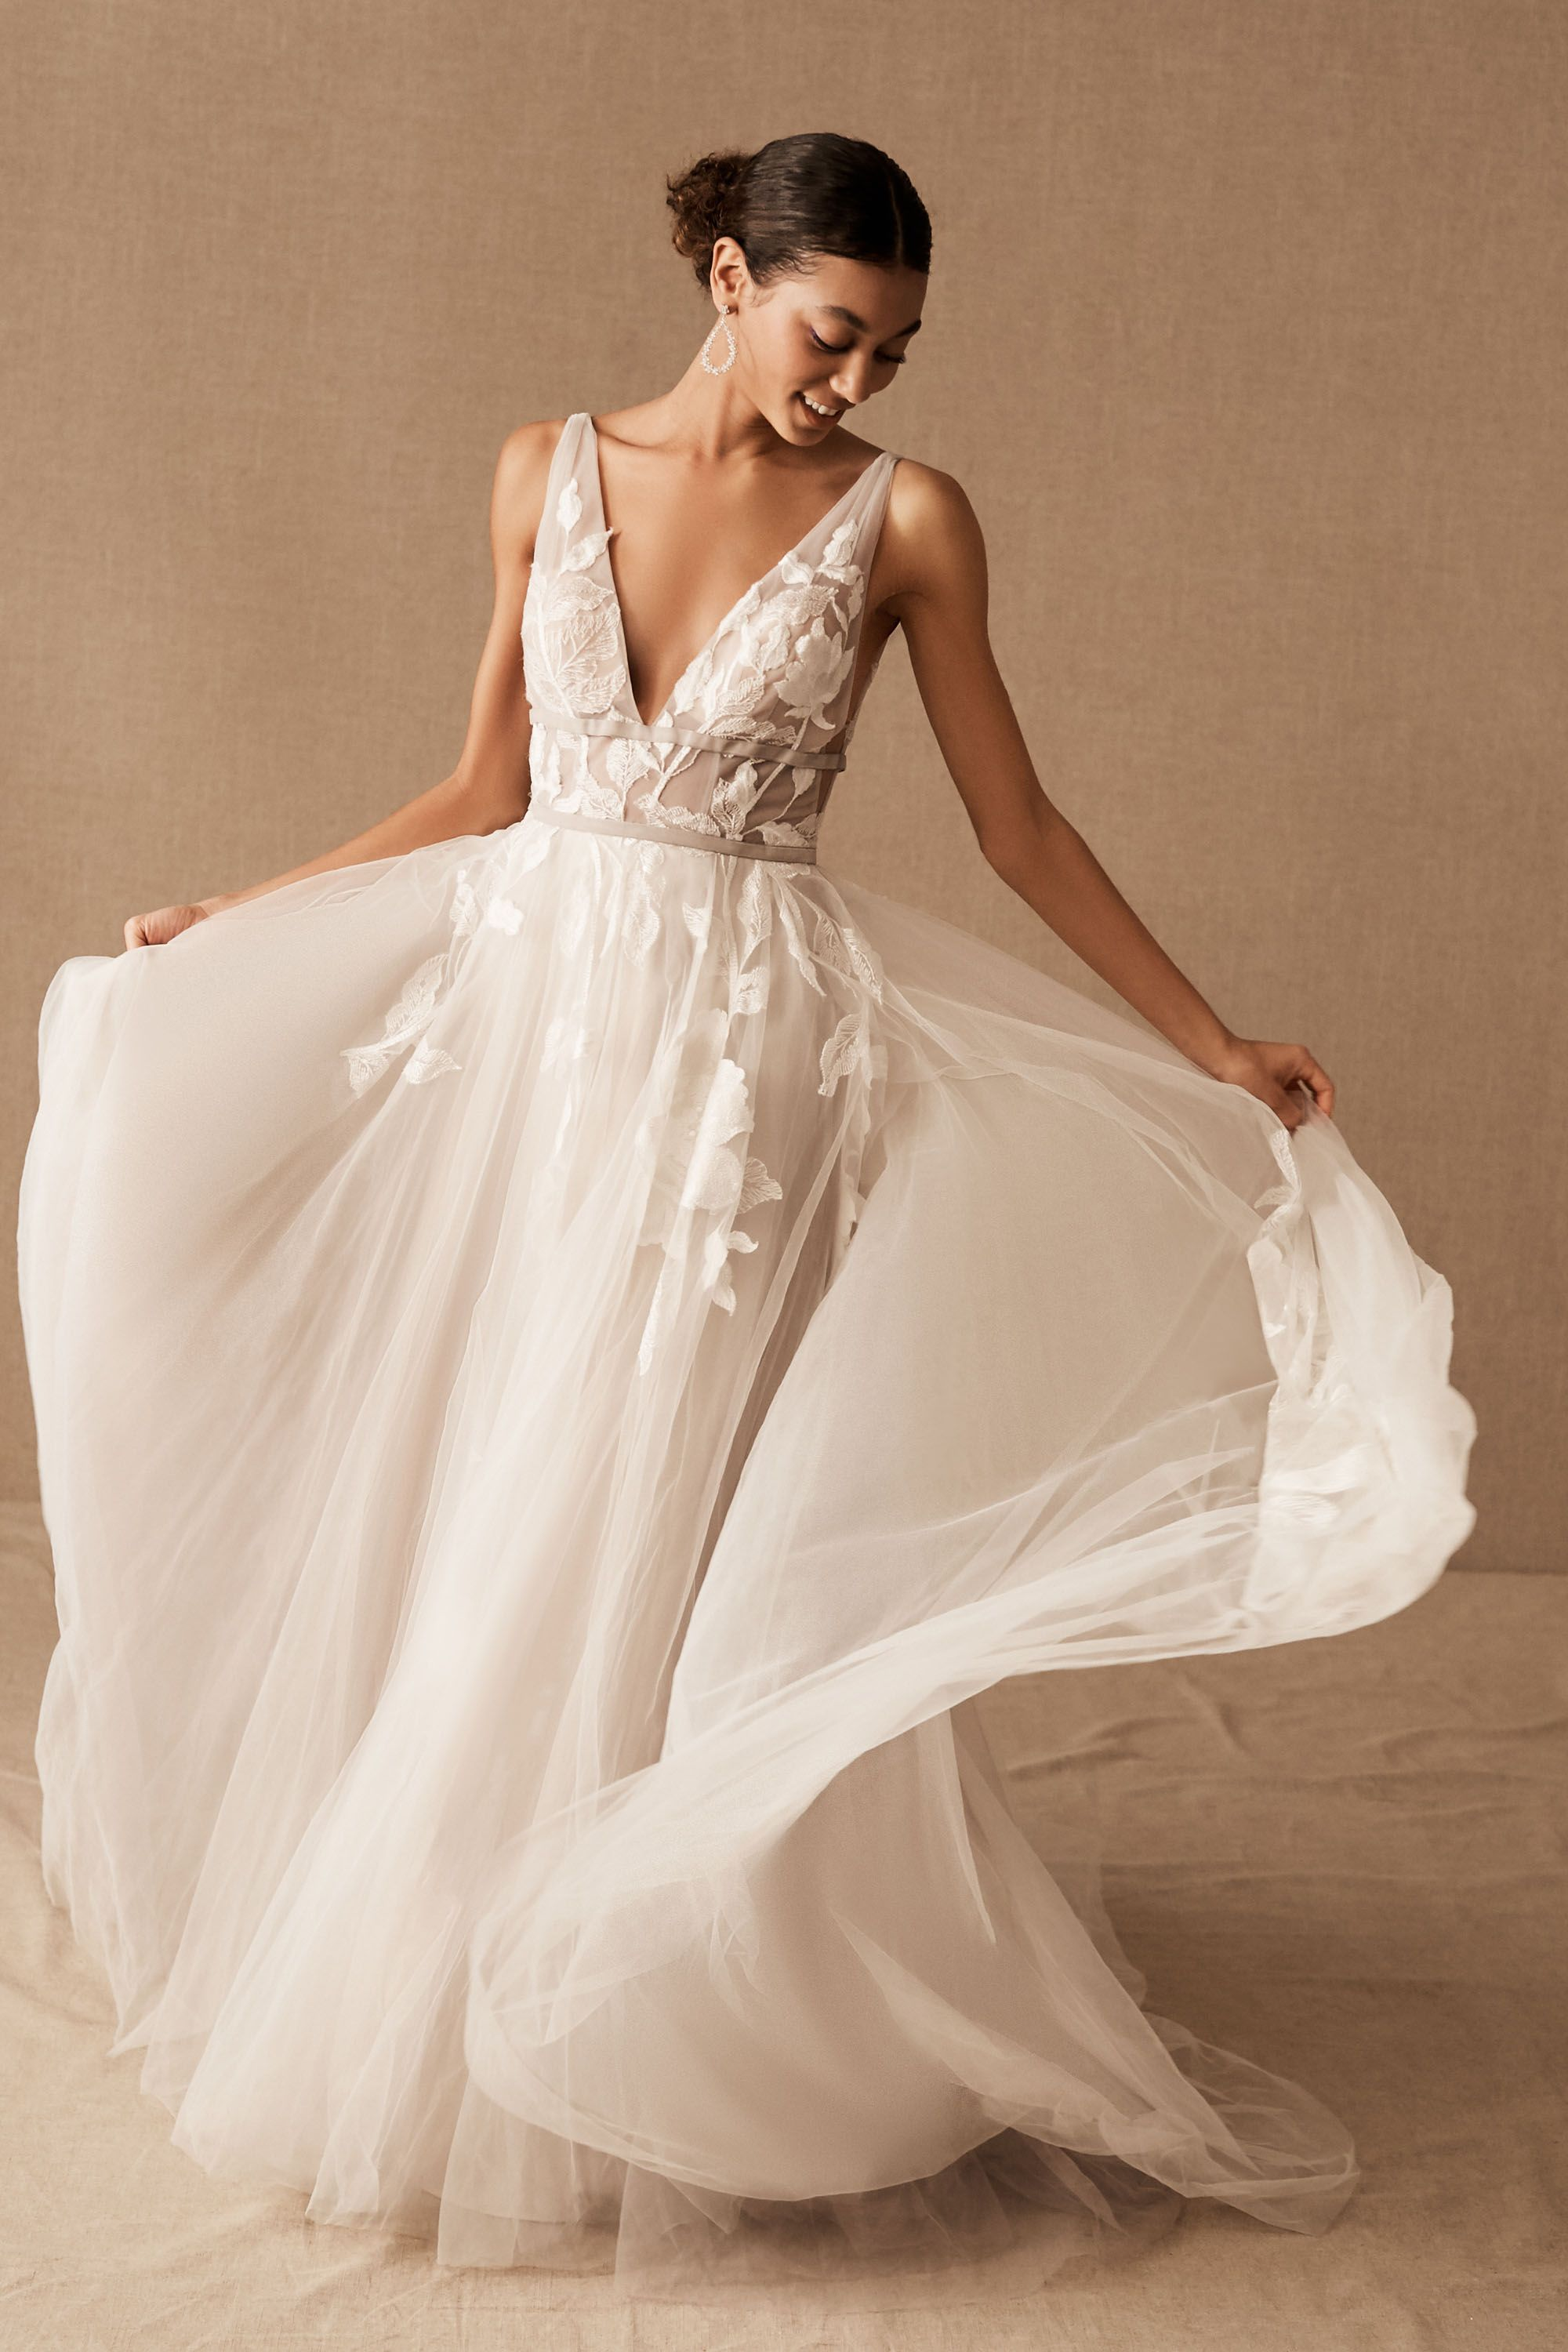 anthropologie wedding dresses canada, OFF 9%,Buy!